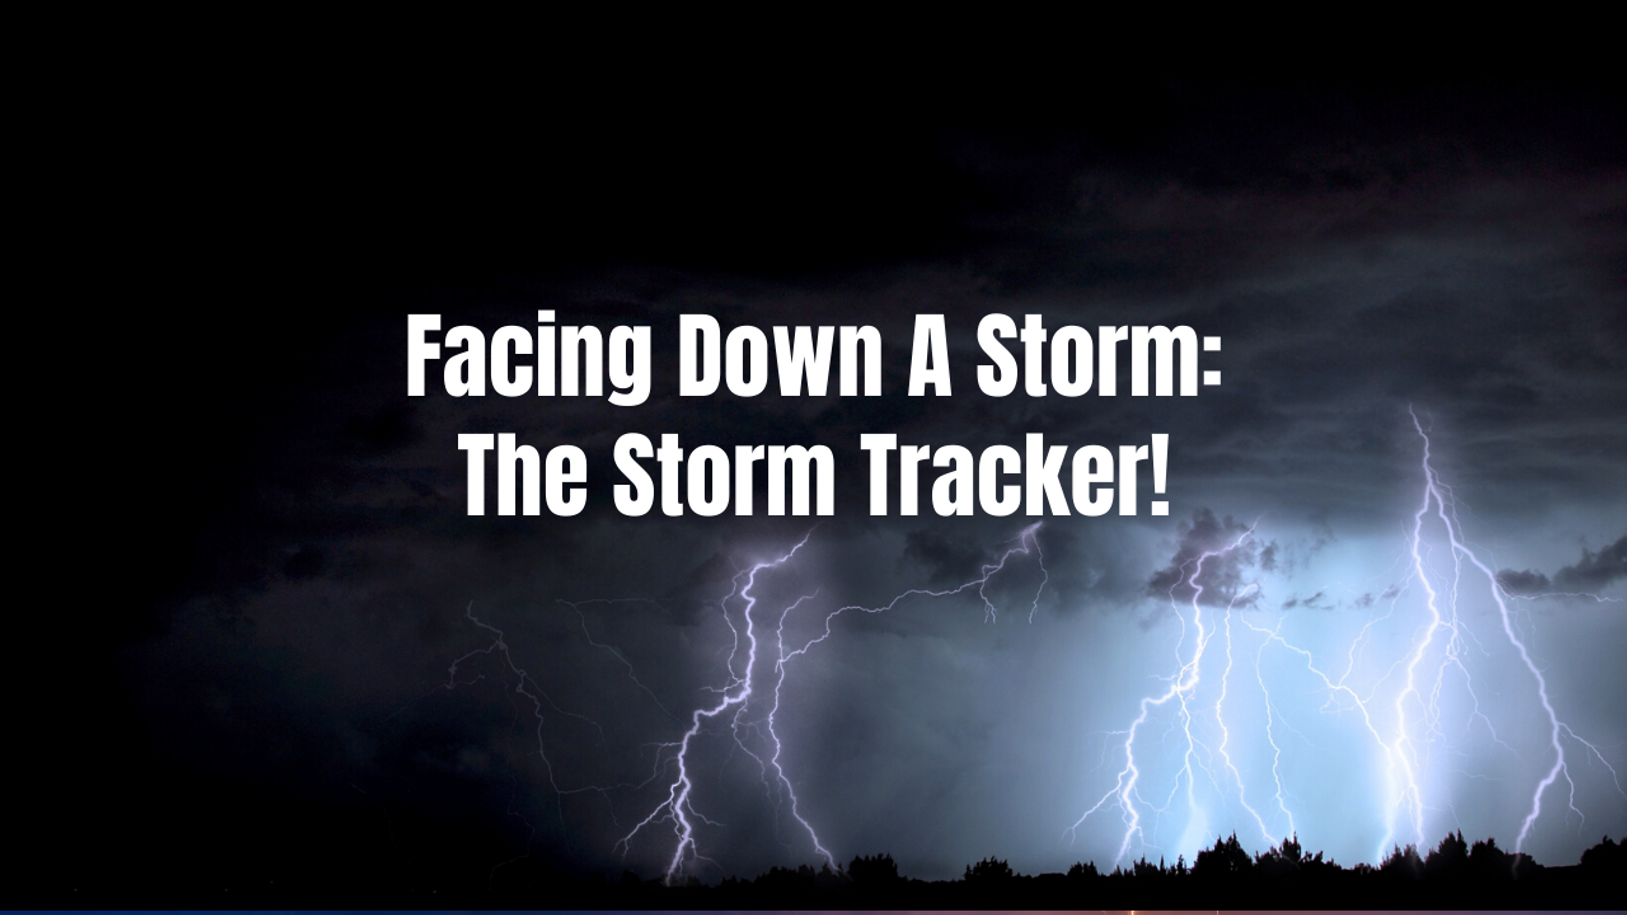 Facing Down a Storm: The Storm Tracker!